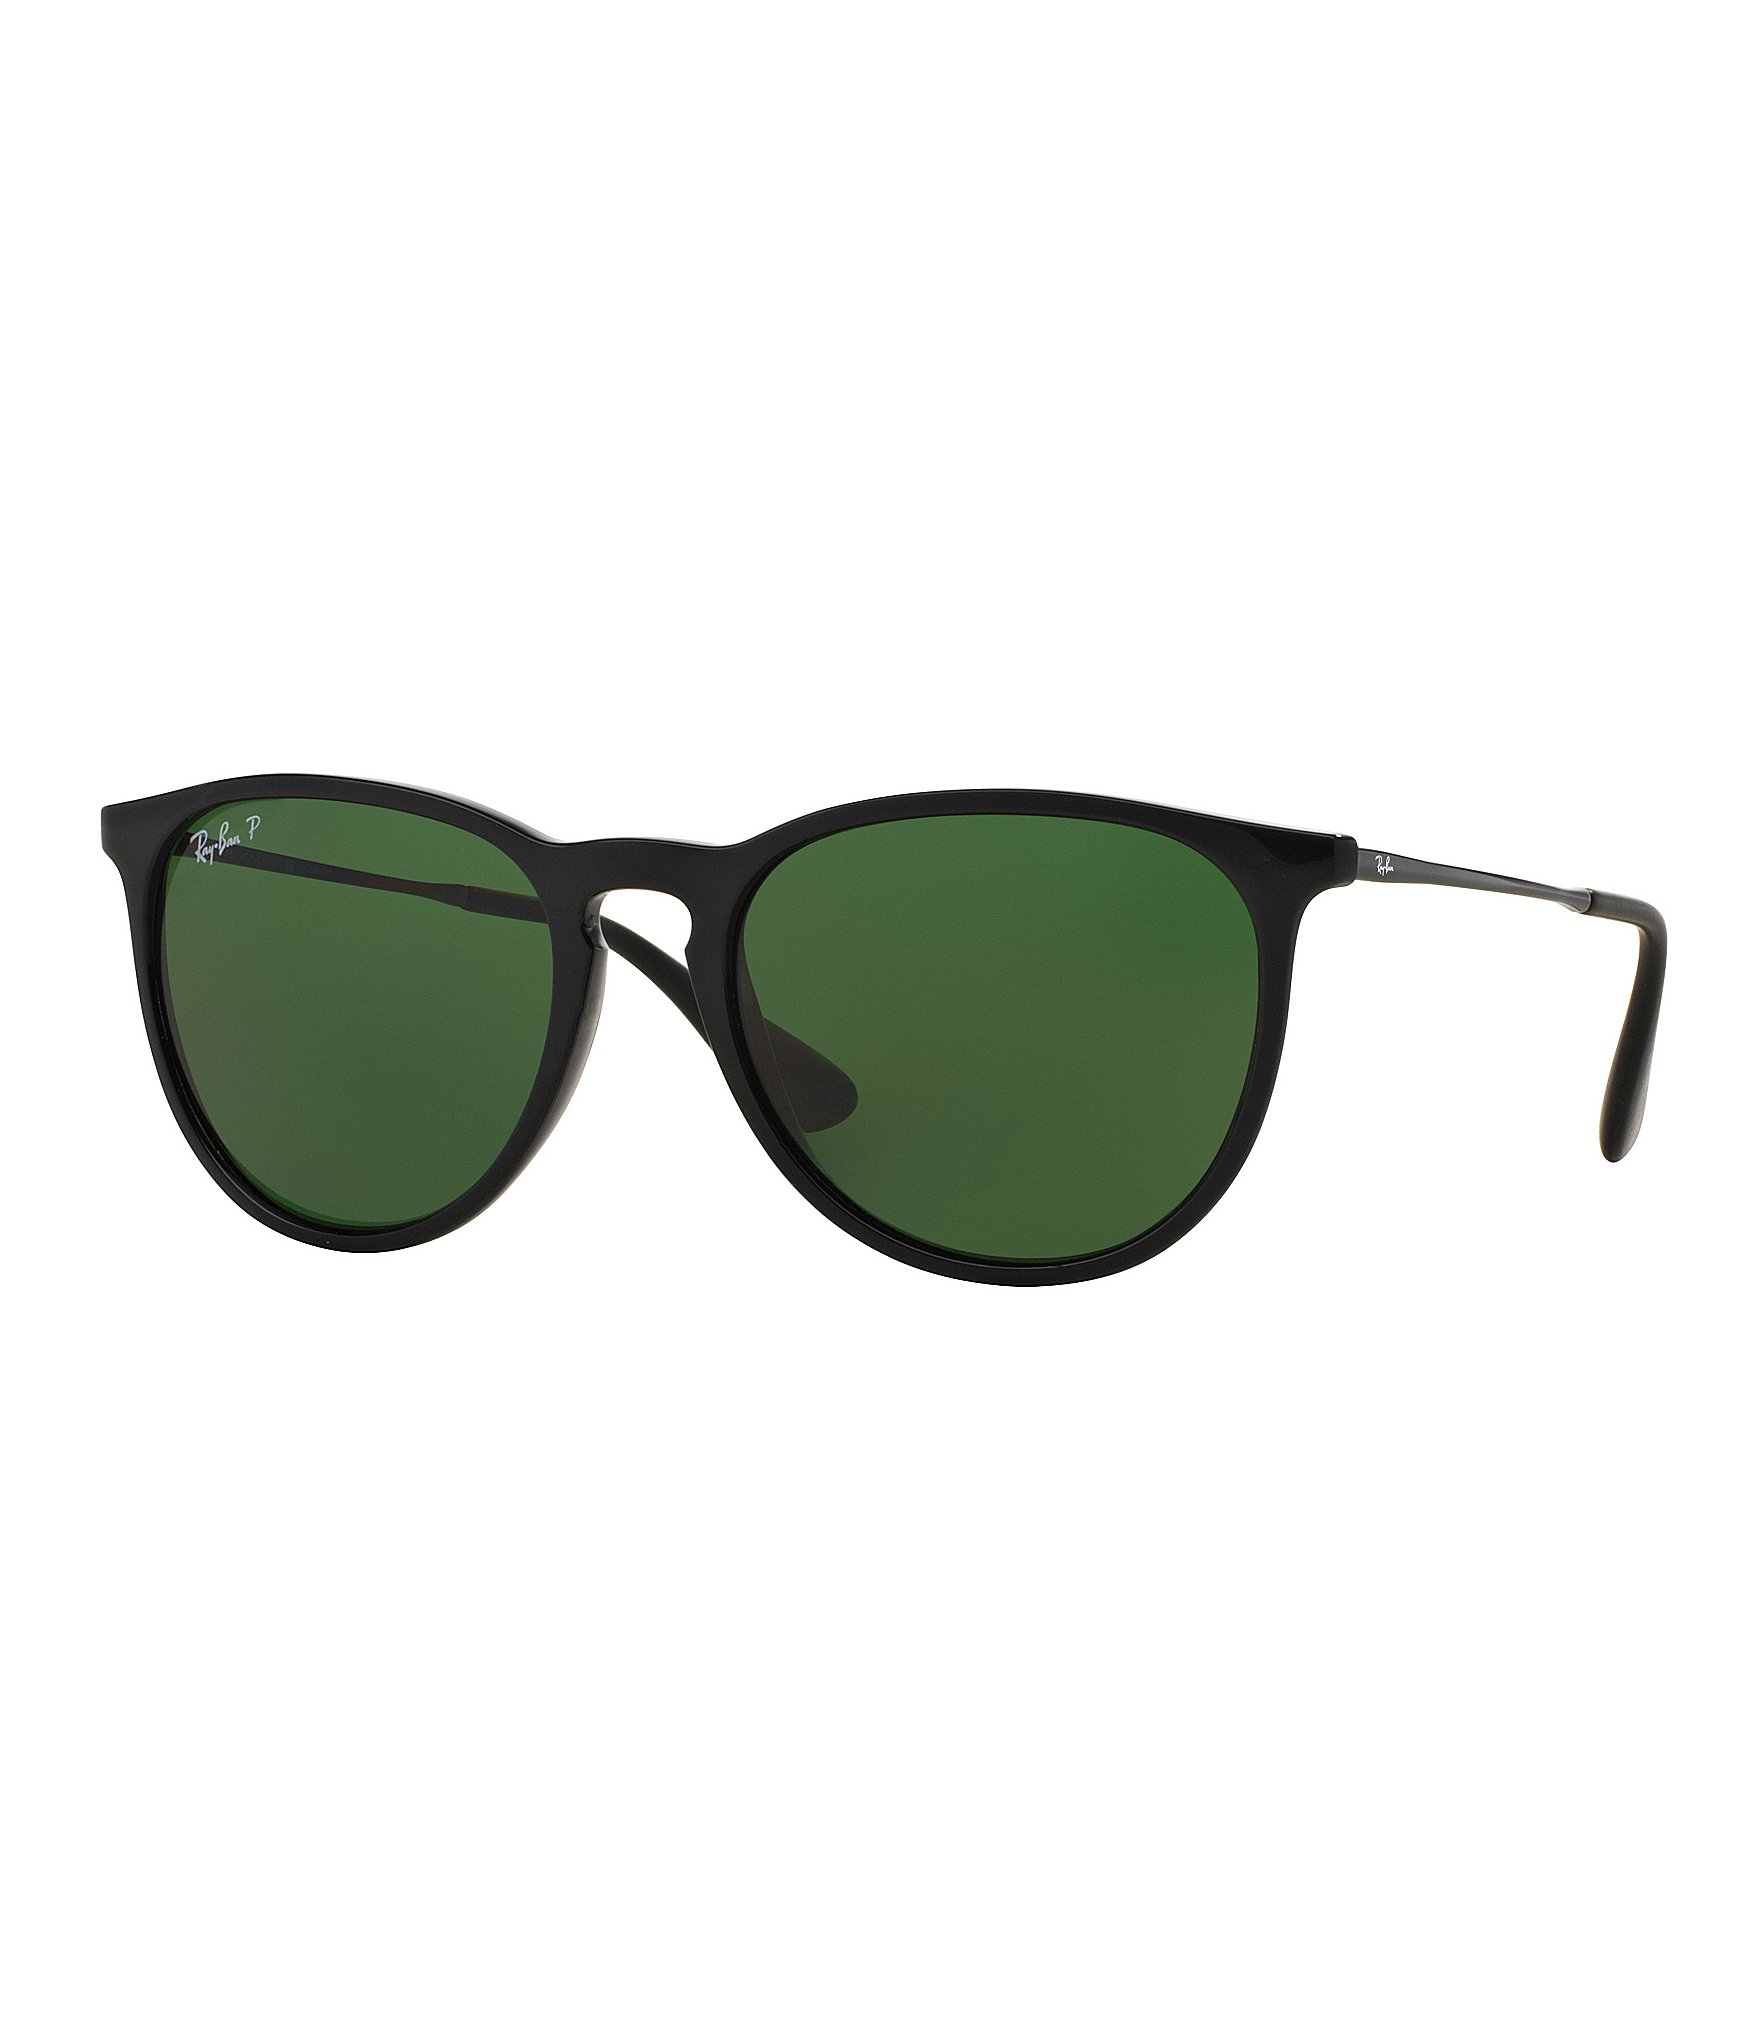 2c848897d8 ... order ray ban erika polarized round sunglasses 1213a 35af2